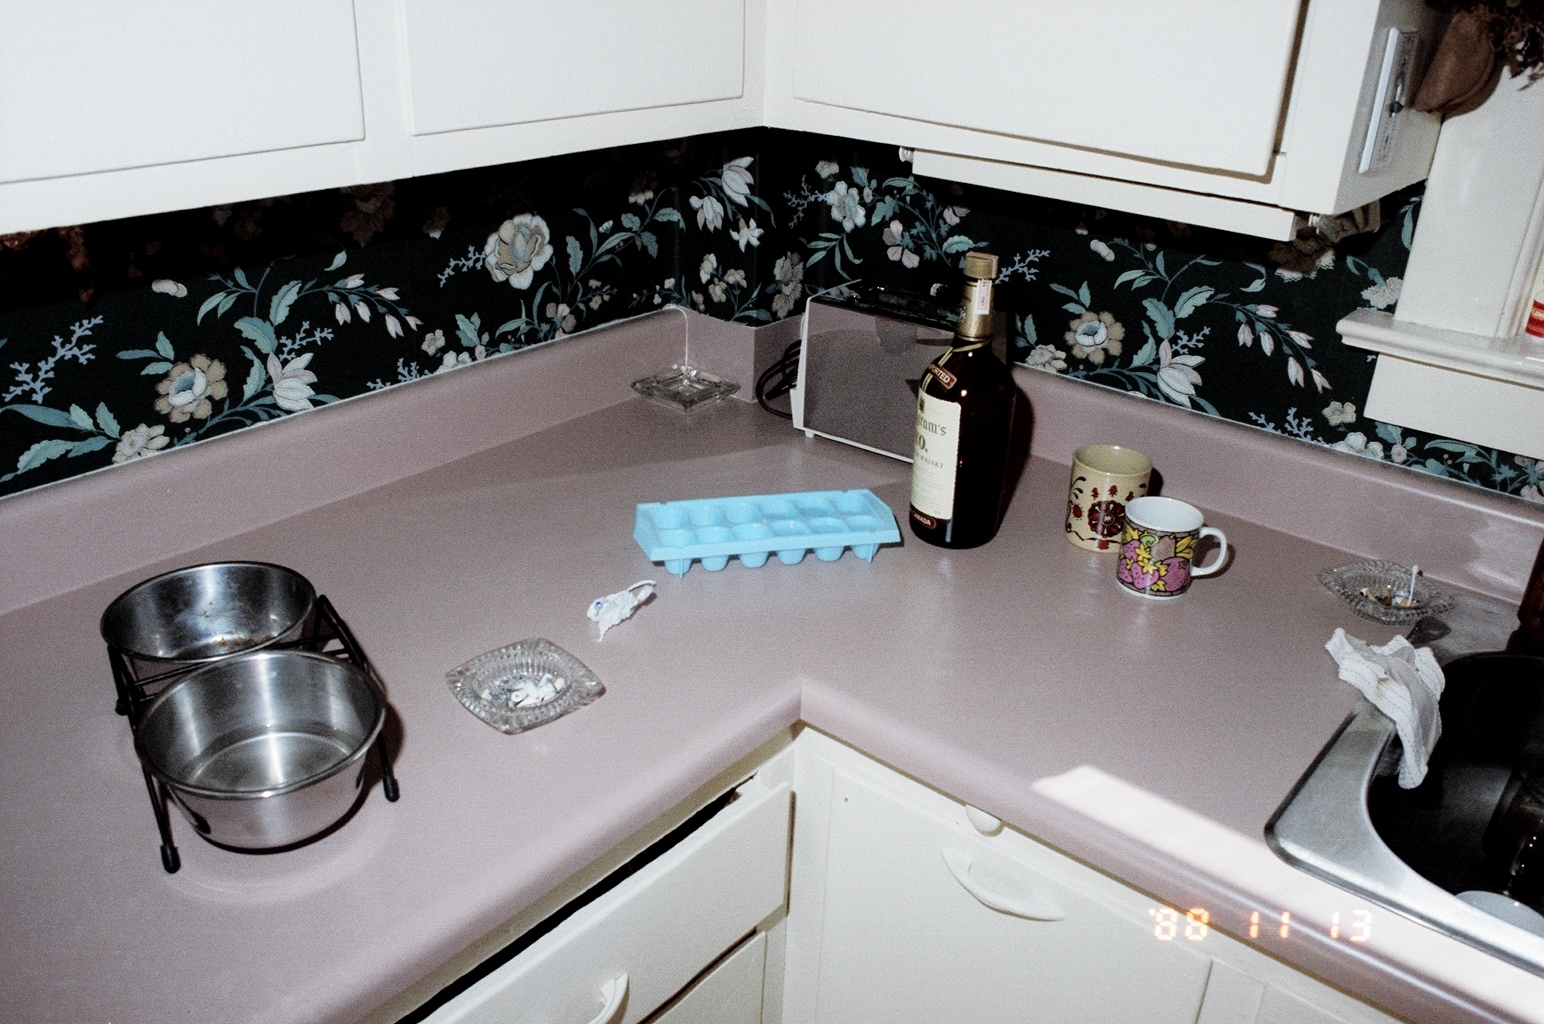 This is how police found the kitchen when investigating the murder. Carr had gone out after having friends over without having a chance to clean up his dishes. (Submitted by Charlottetown Police)